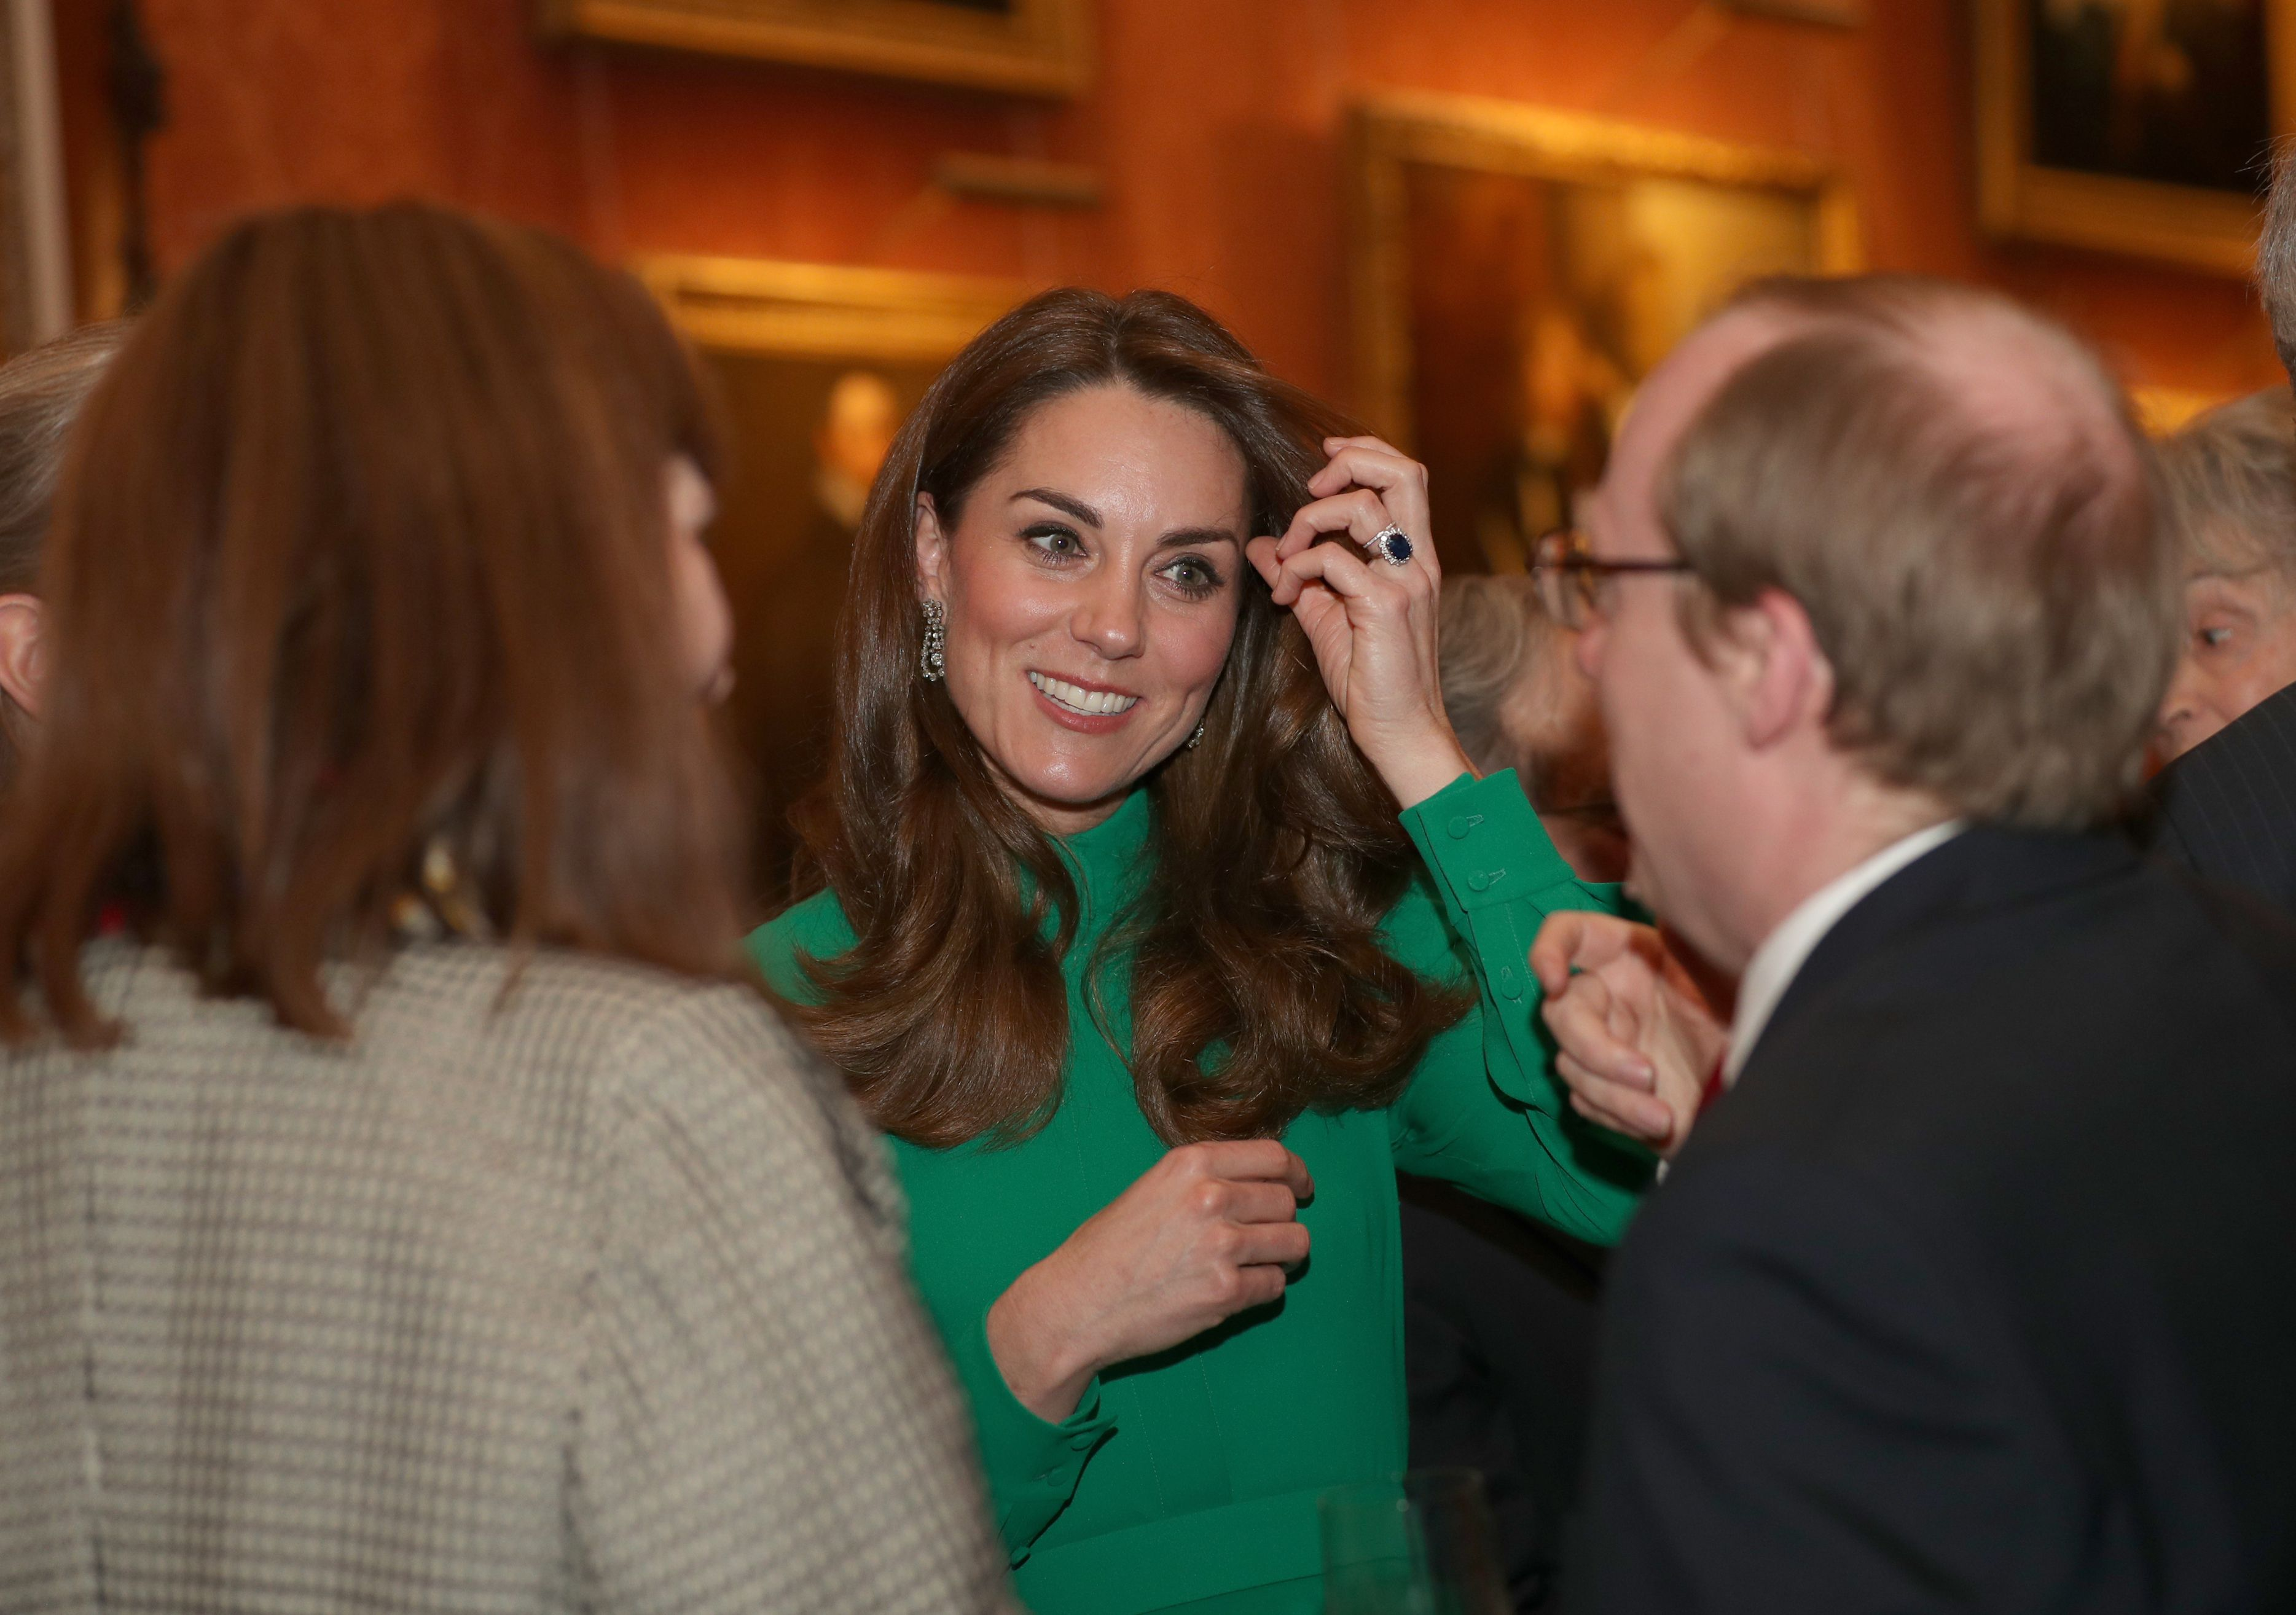 Kate Middleton Stuns In Green Emilia Wickstead Dress To Meet Donald And Melania Trump At Buckingham Palace